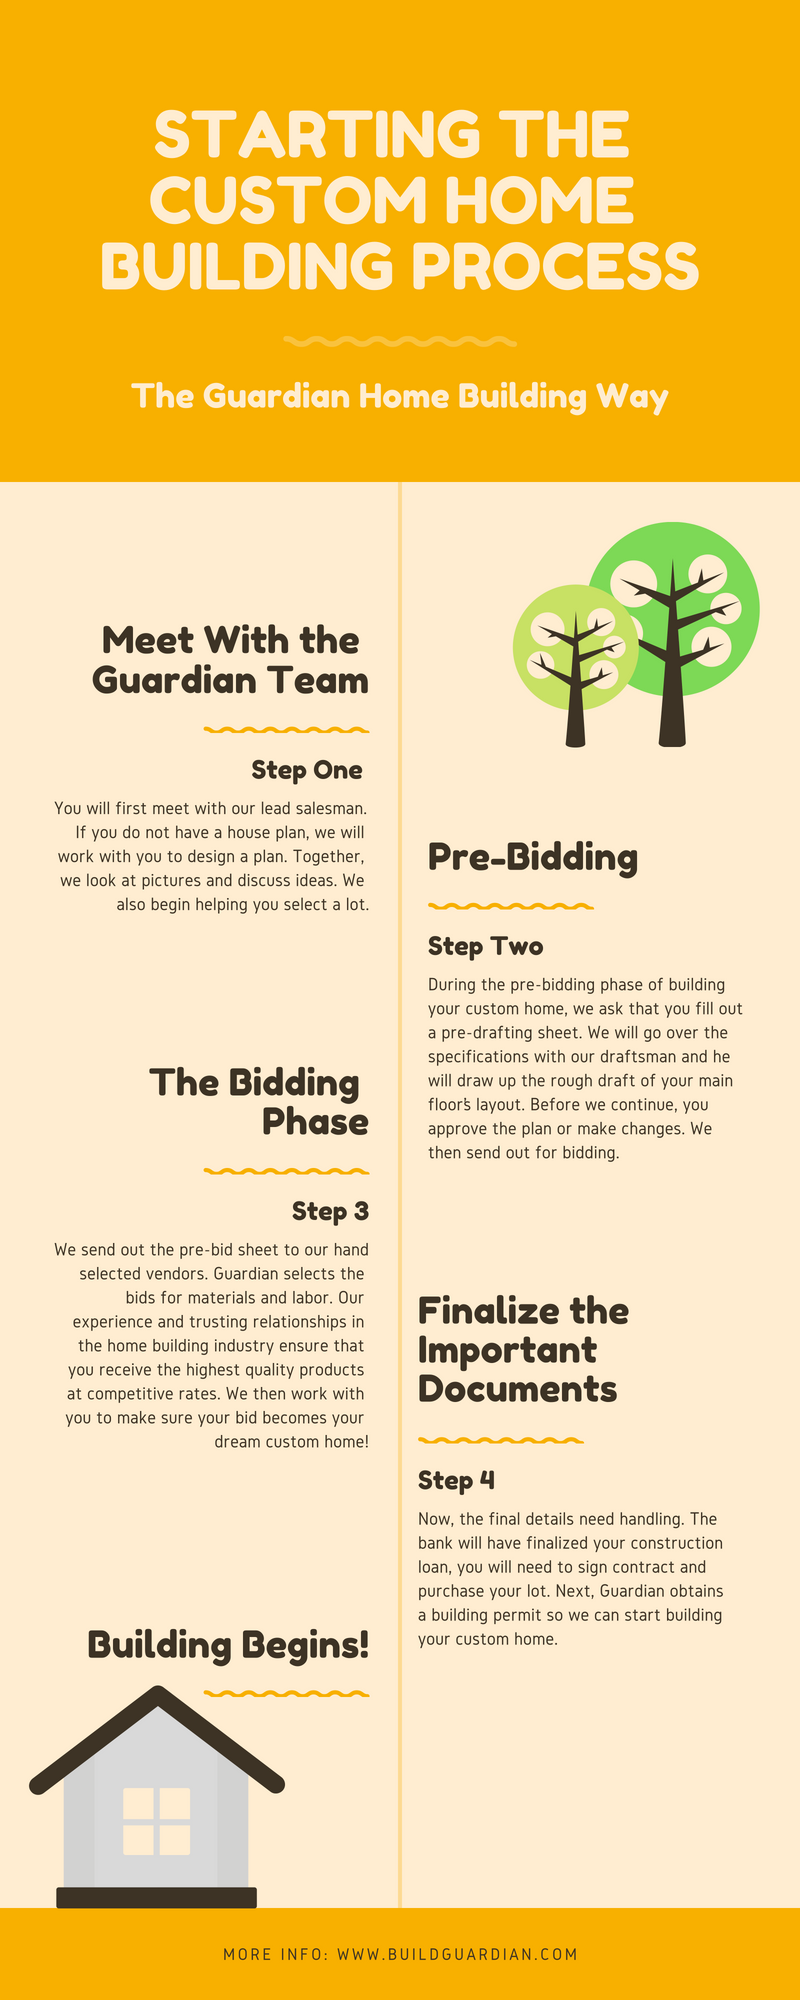 Beginning the Home Building Process #infographic